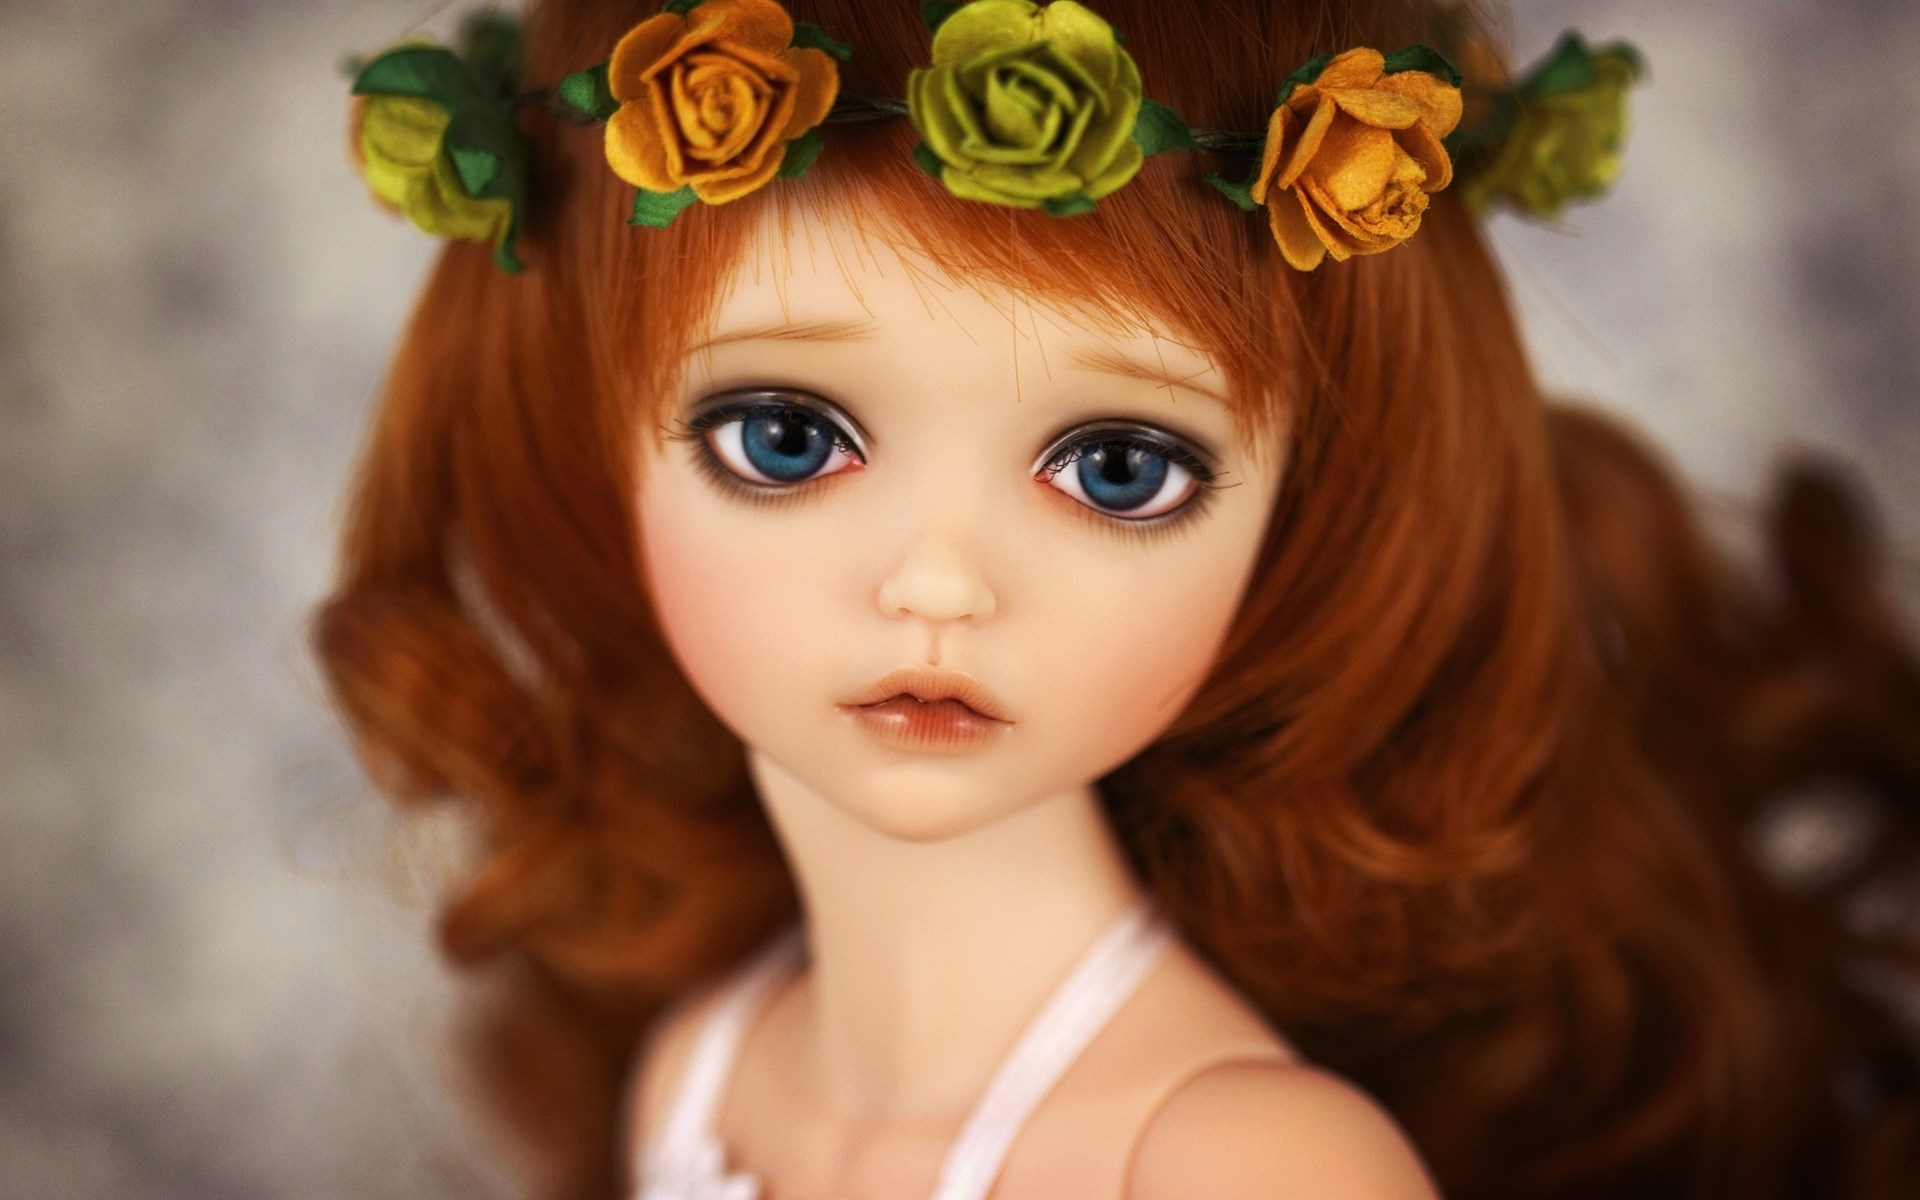 toy doll wallpaper hd 42437